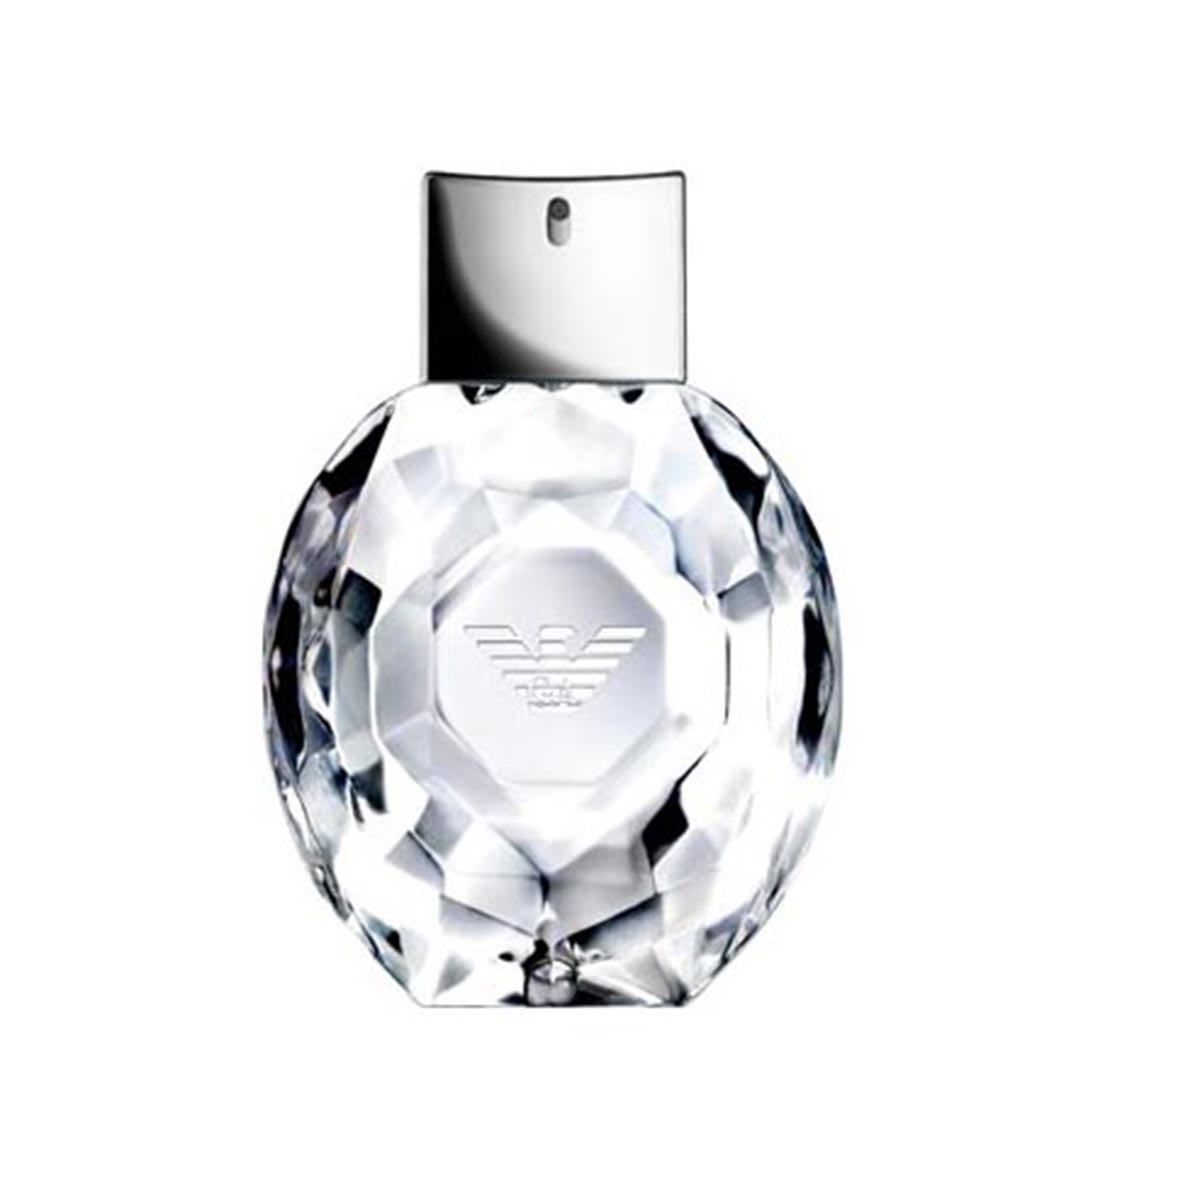 Giorgio armani diamonds woman eau de parfum 50ml vaporizador